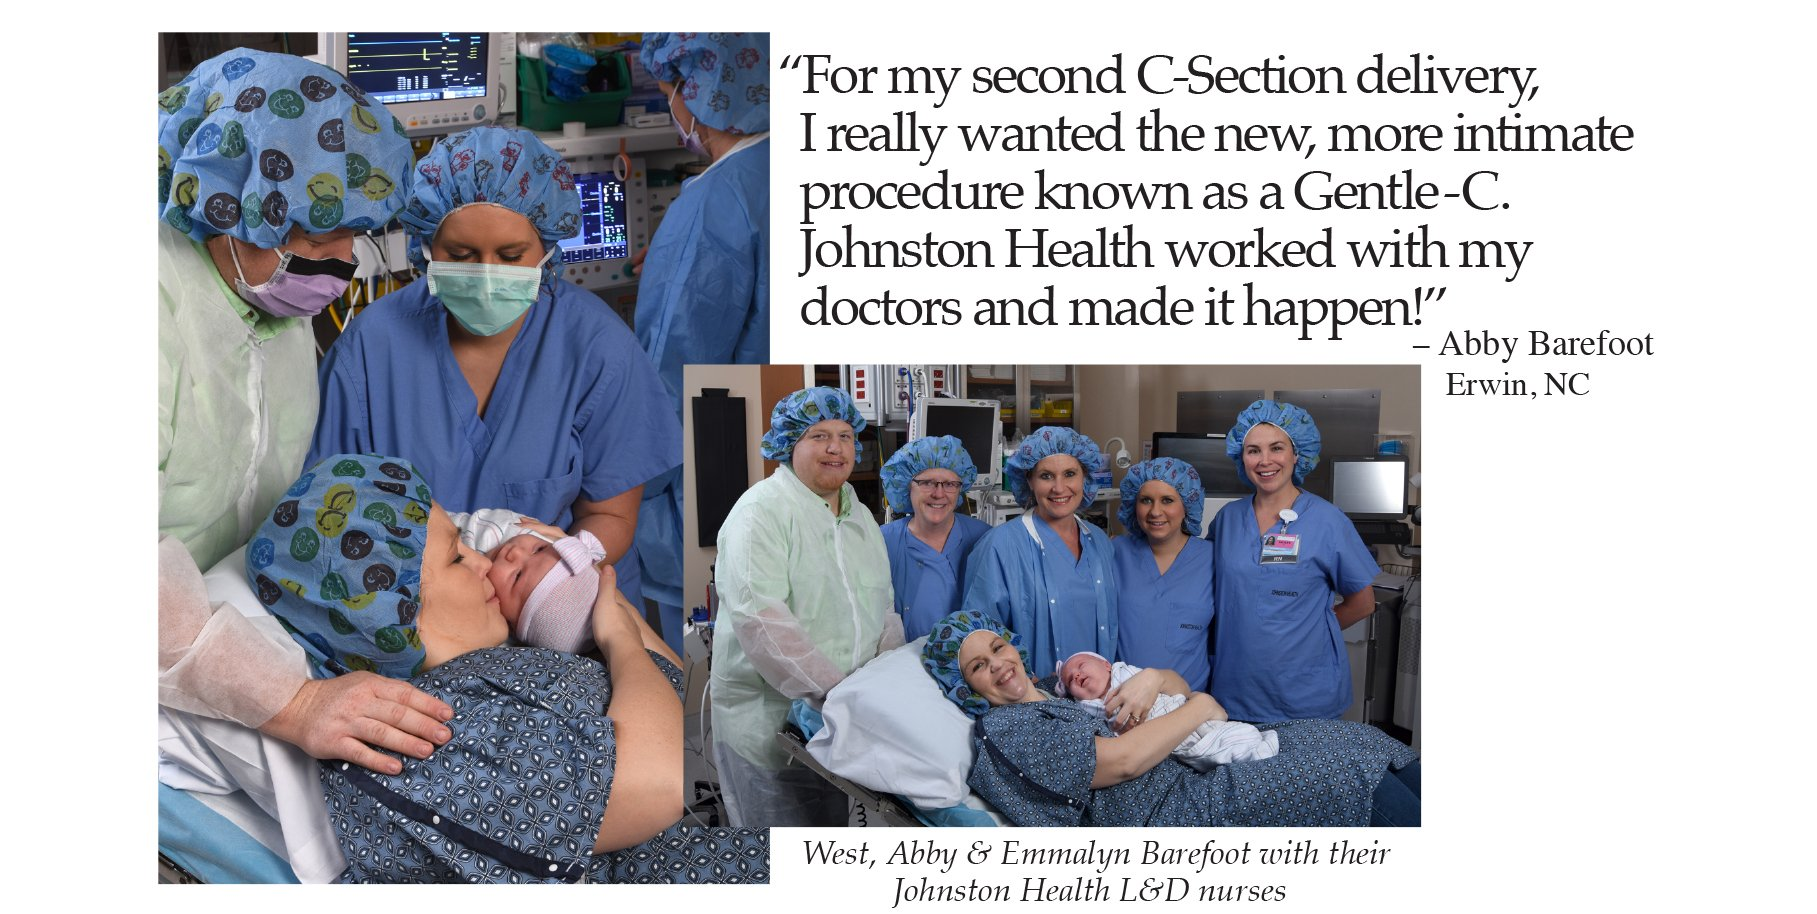 Abby Barefoot's c-section